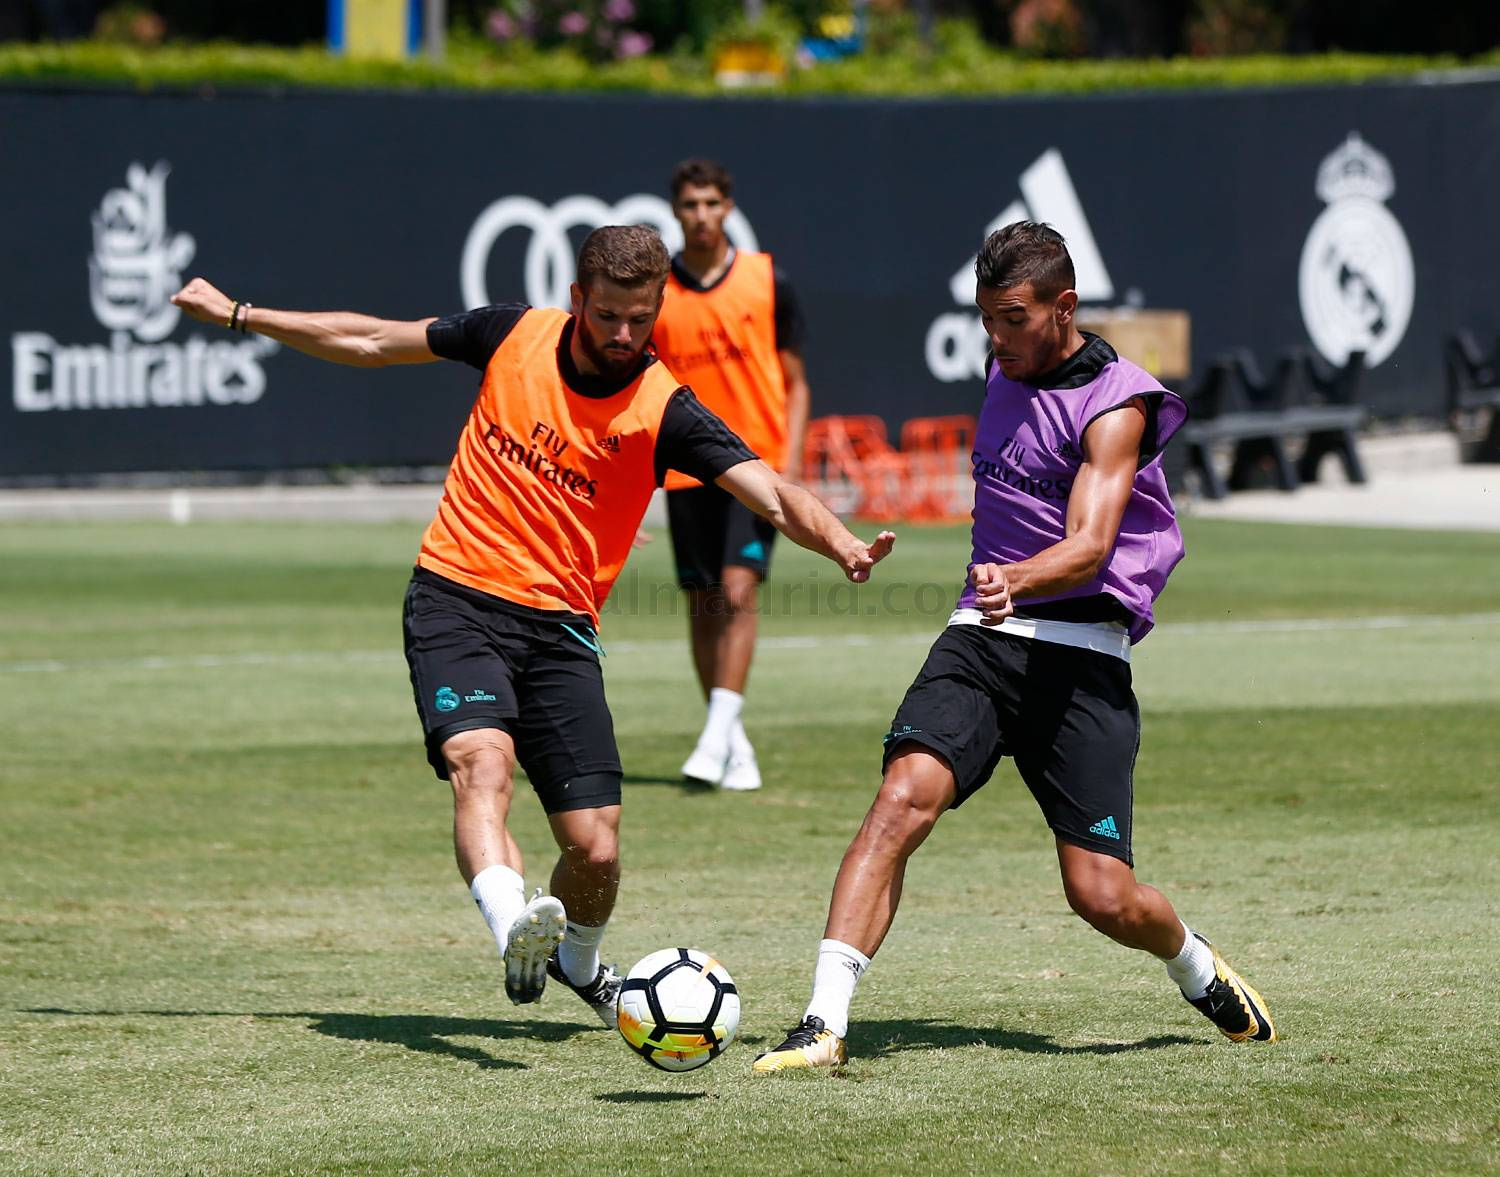 Real Madrid - Entrenamiento del Real Madrid en UCLA - 19-07-2017